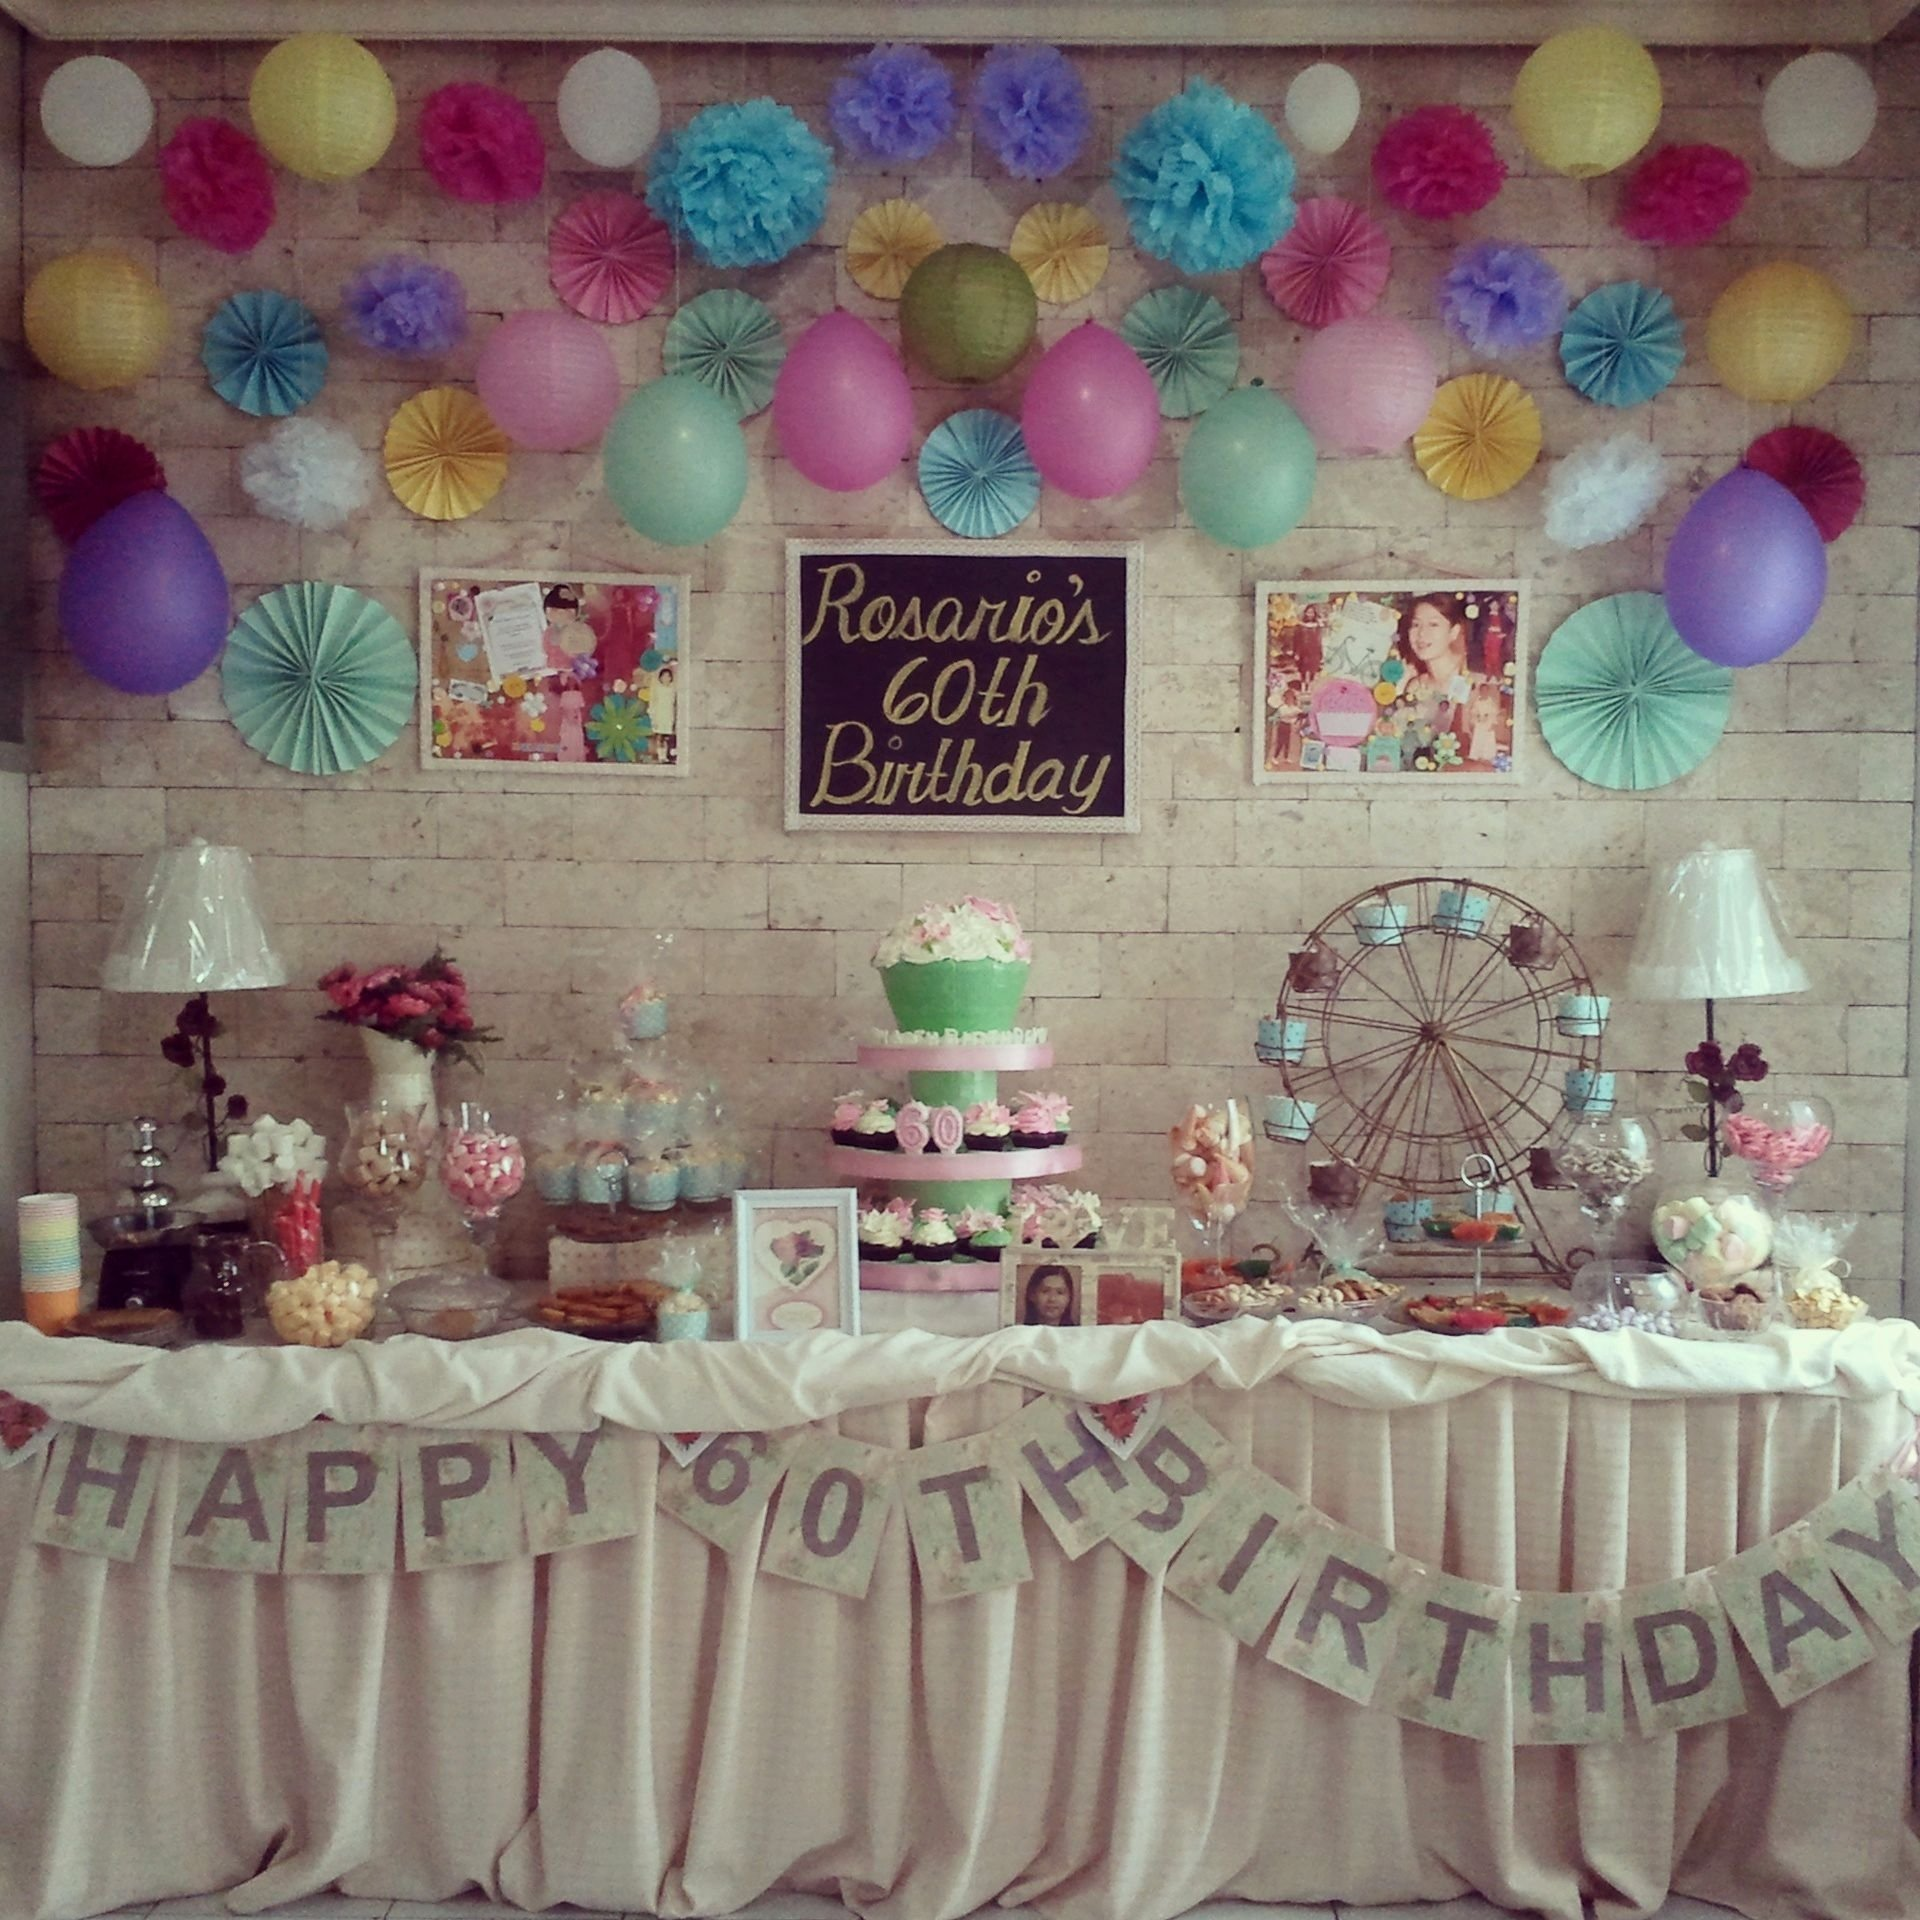 10 Nice 60Th Birthday Party Ideas For Mom 60th birthday party ideas for mom plus funny 60th birthday gifts 2020